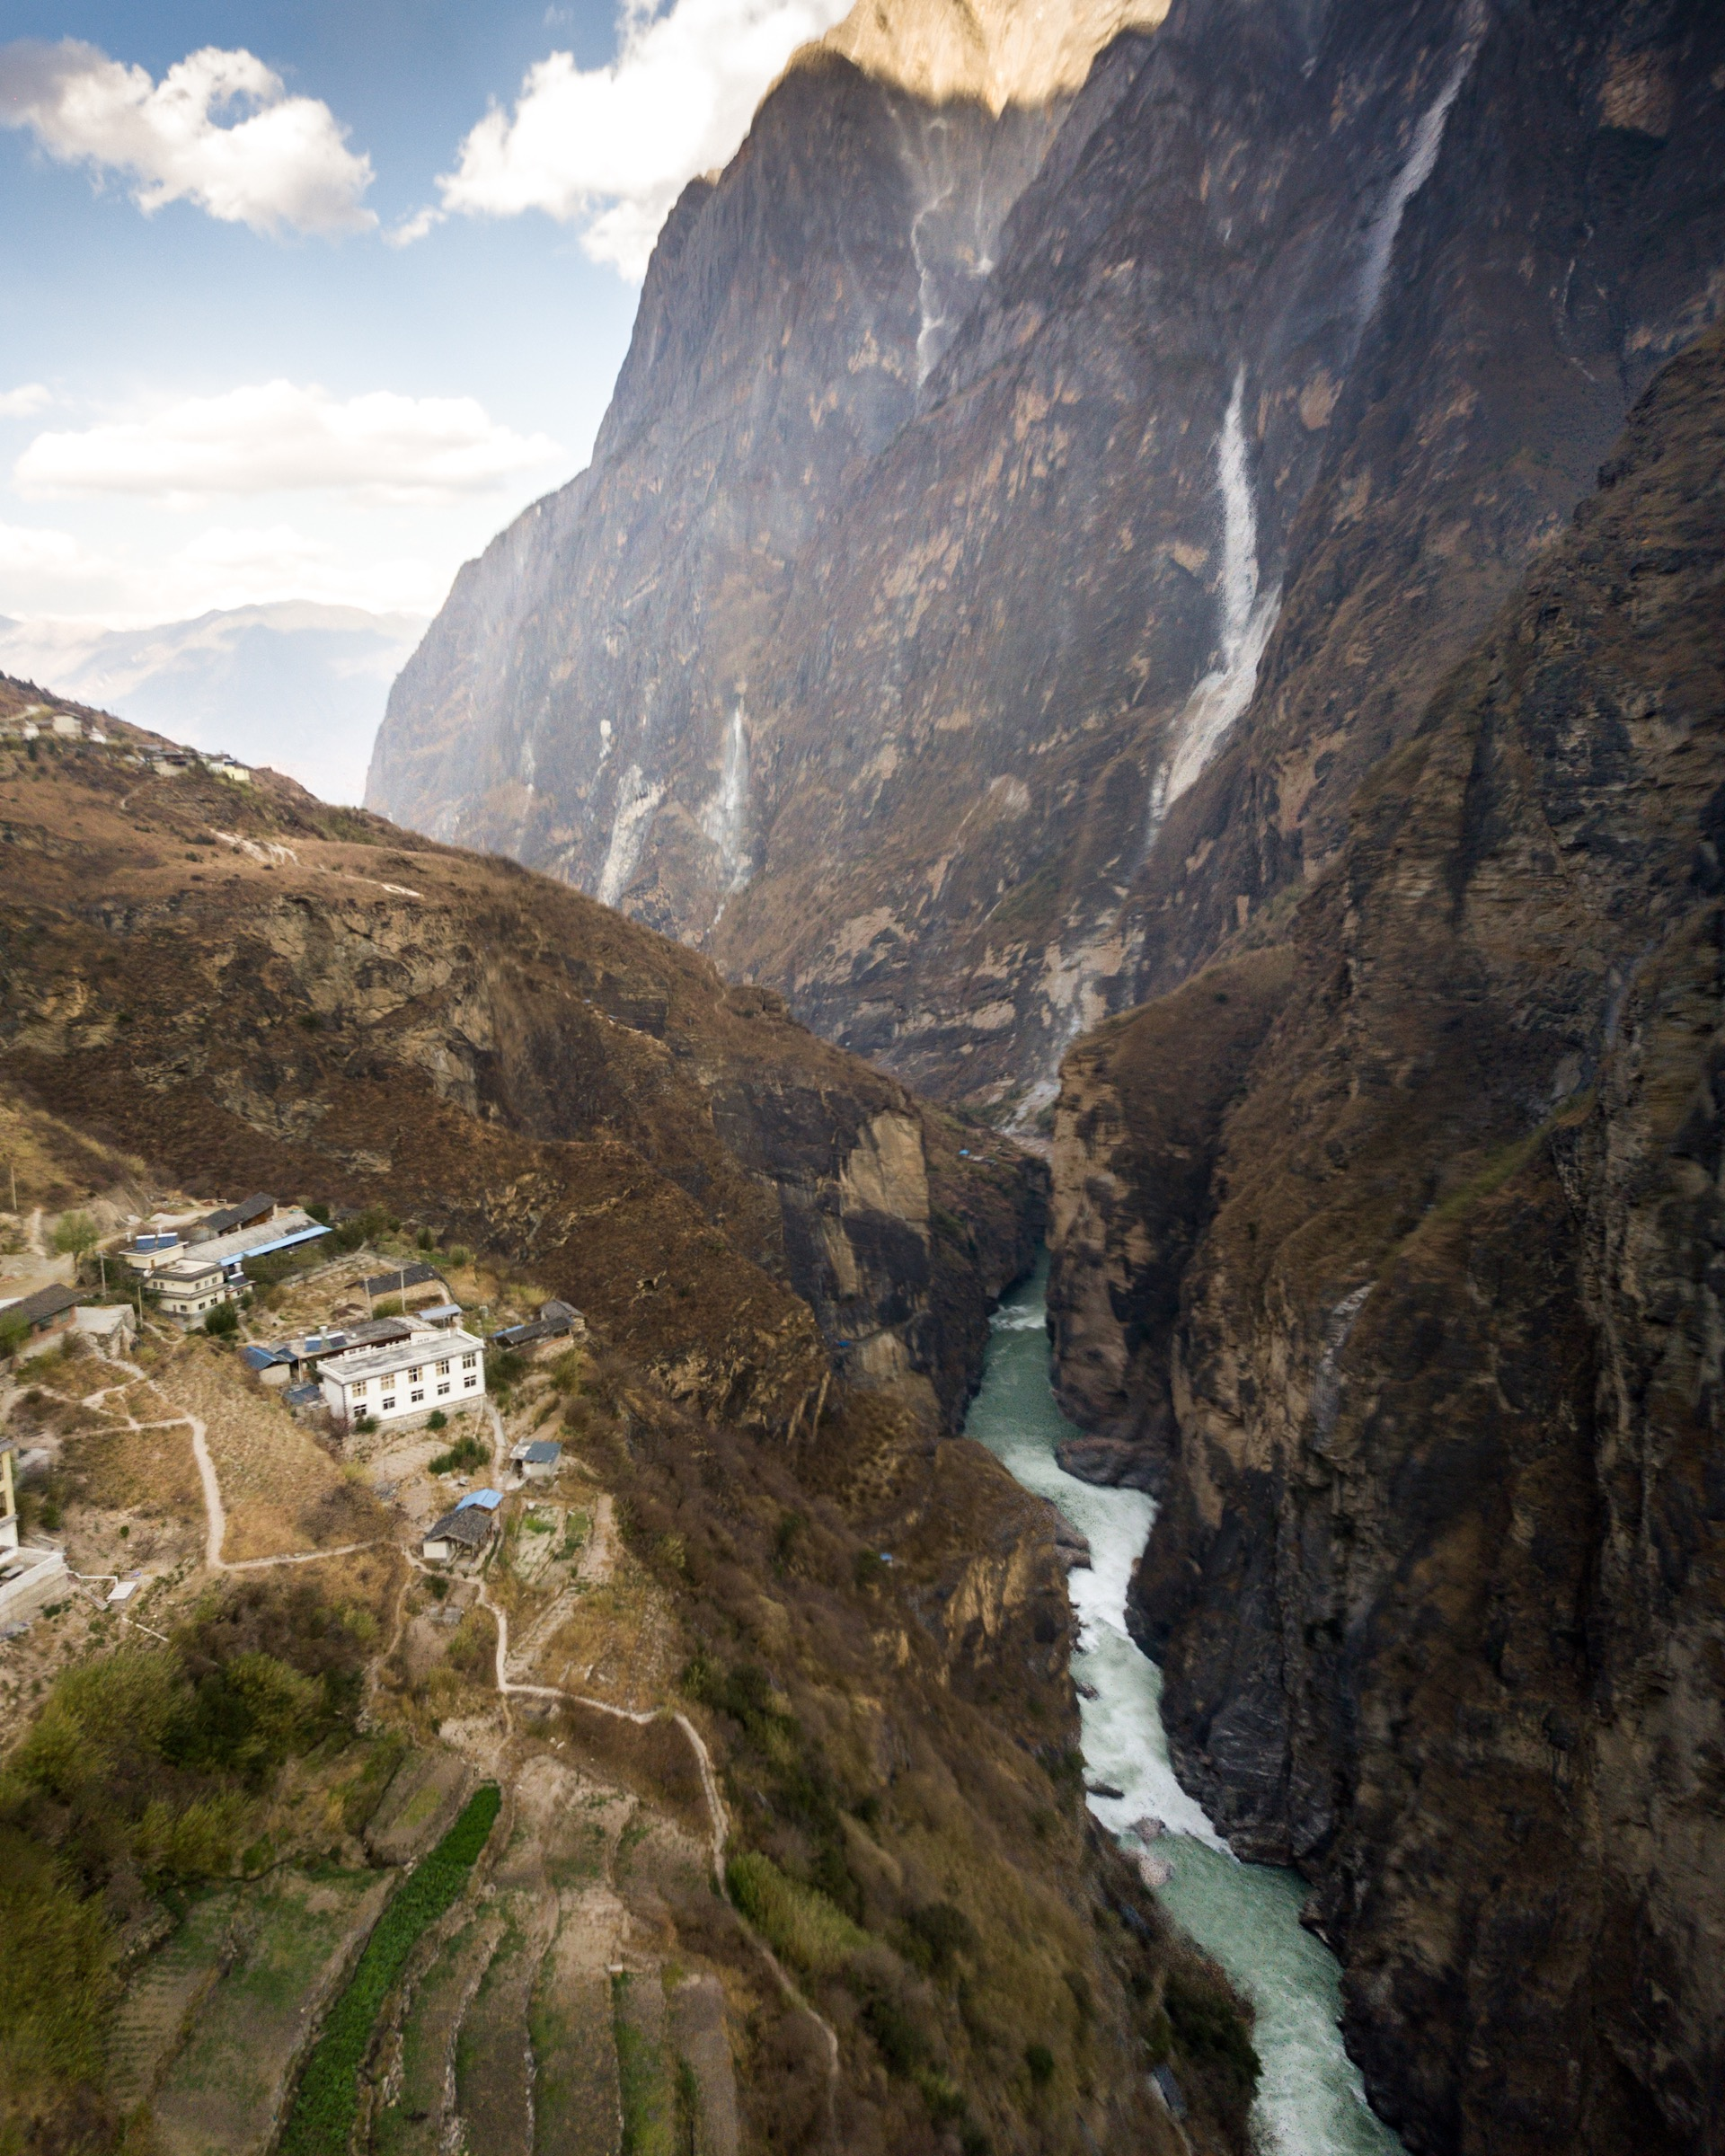 Before the Yangtze runs out into the more densely populated eastern China, it cuts through countless dramatic mountains landscapes. Photograph by Kyle Obermann